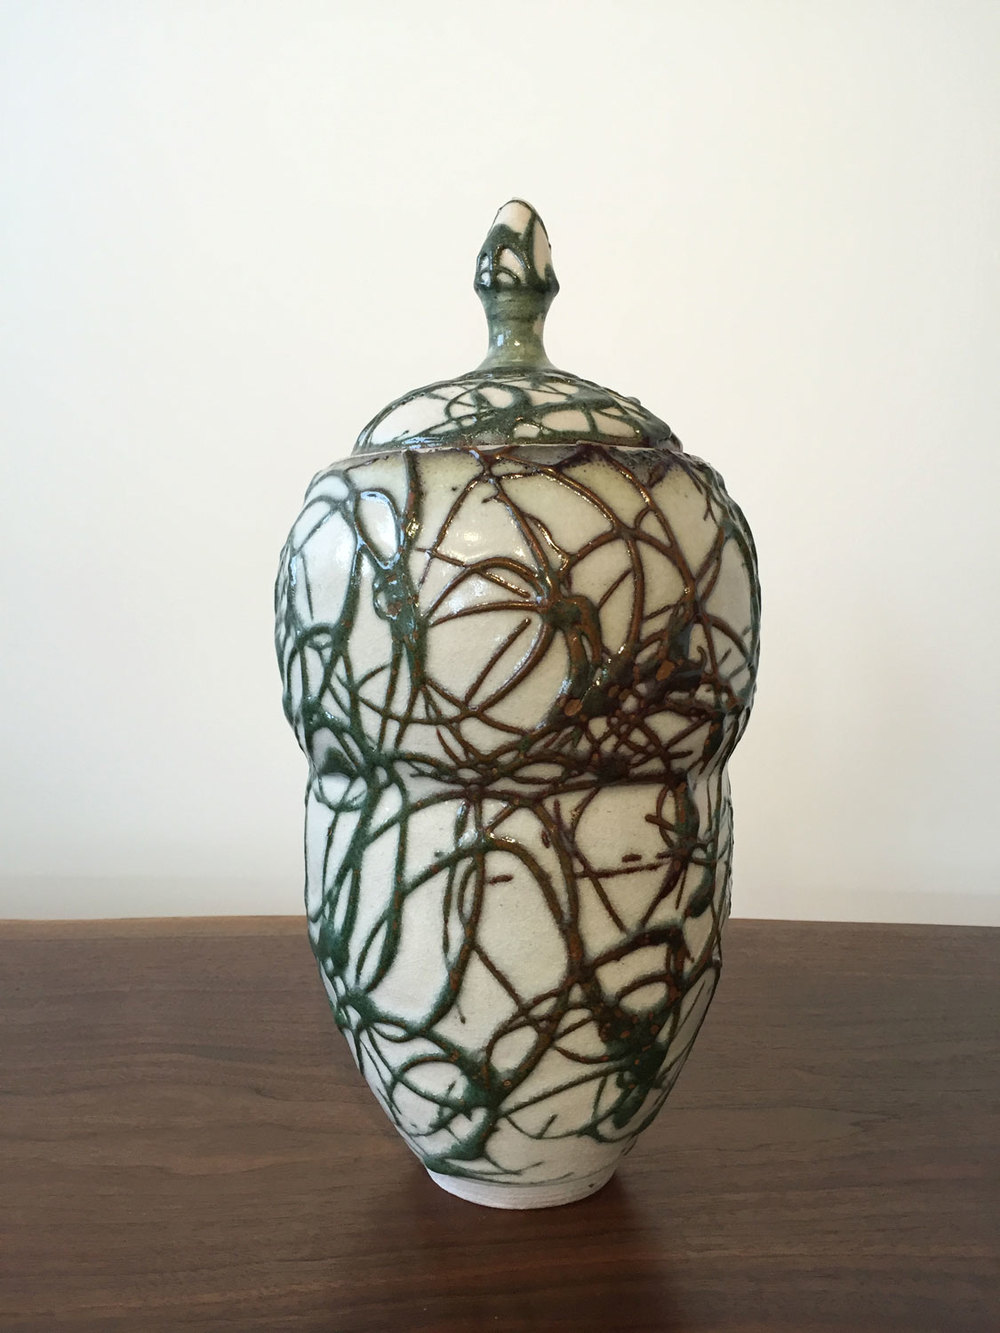 Jacob Burmood Lidded Vessel Ceramic 12.5 x 6 x 6 $ 400 • SOLD